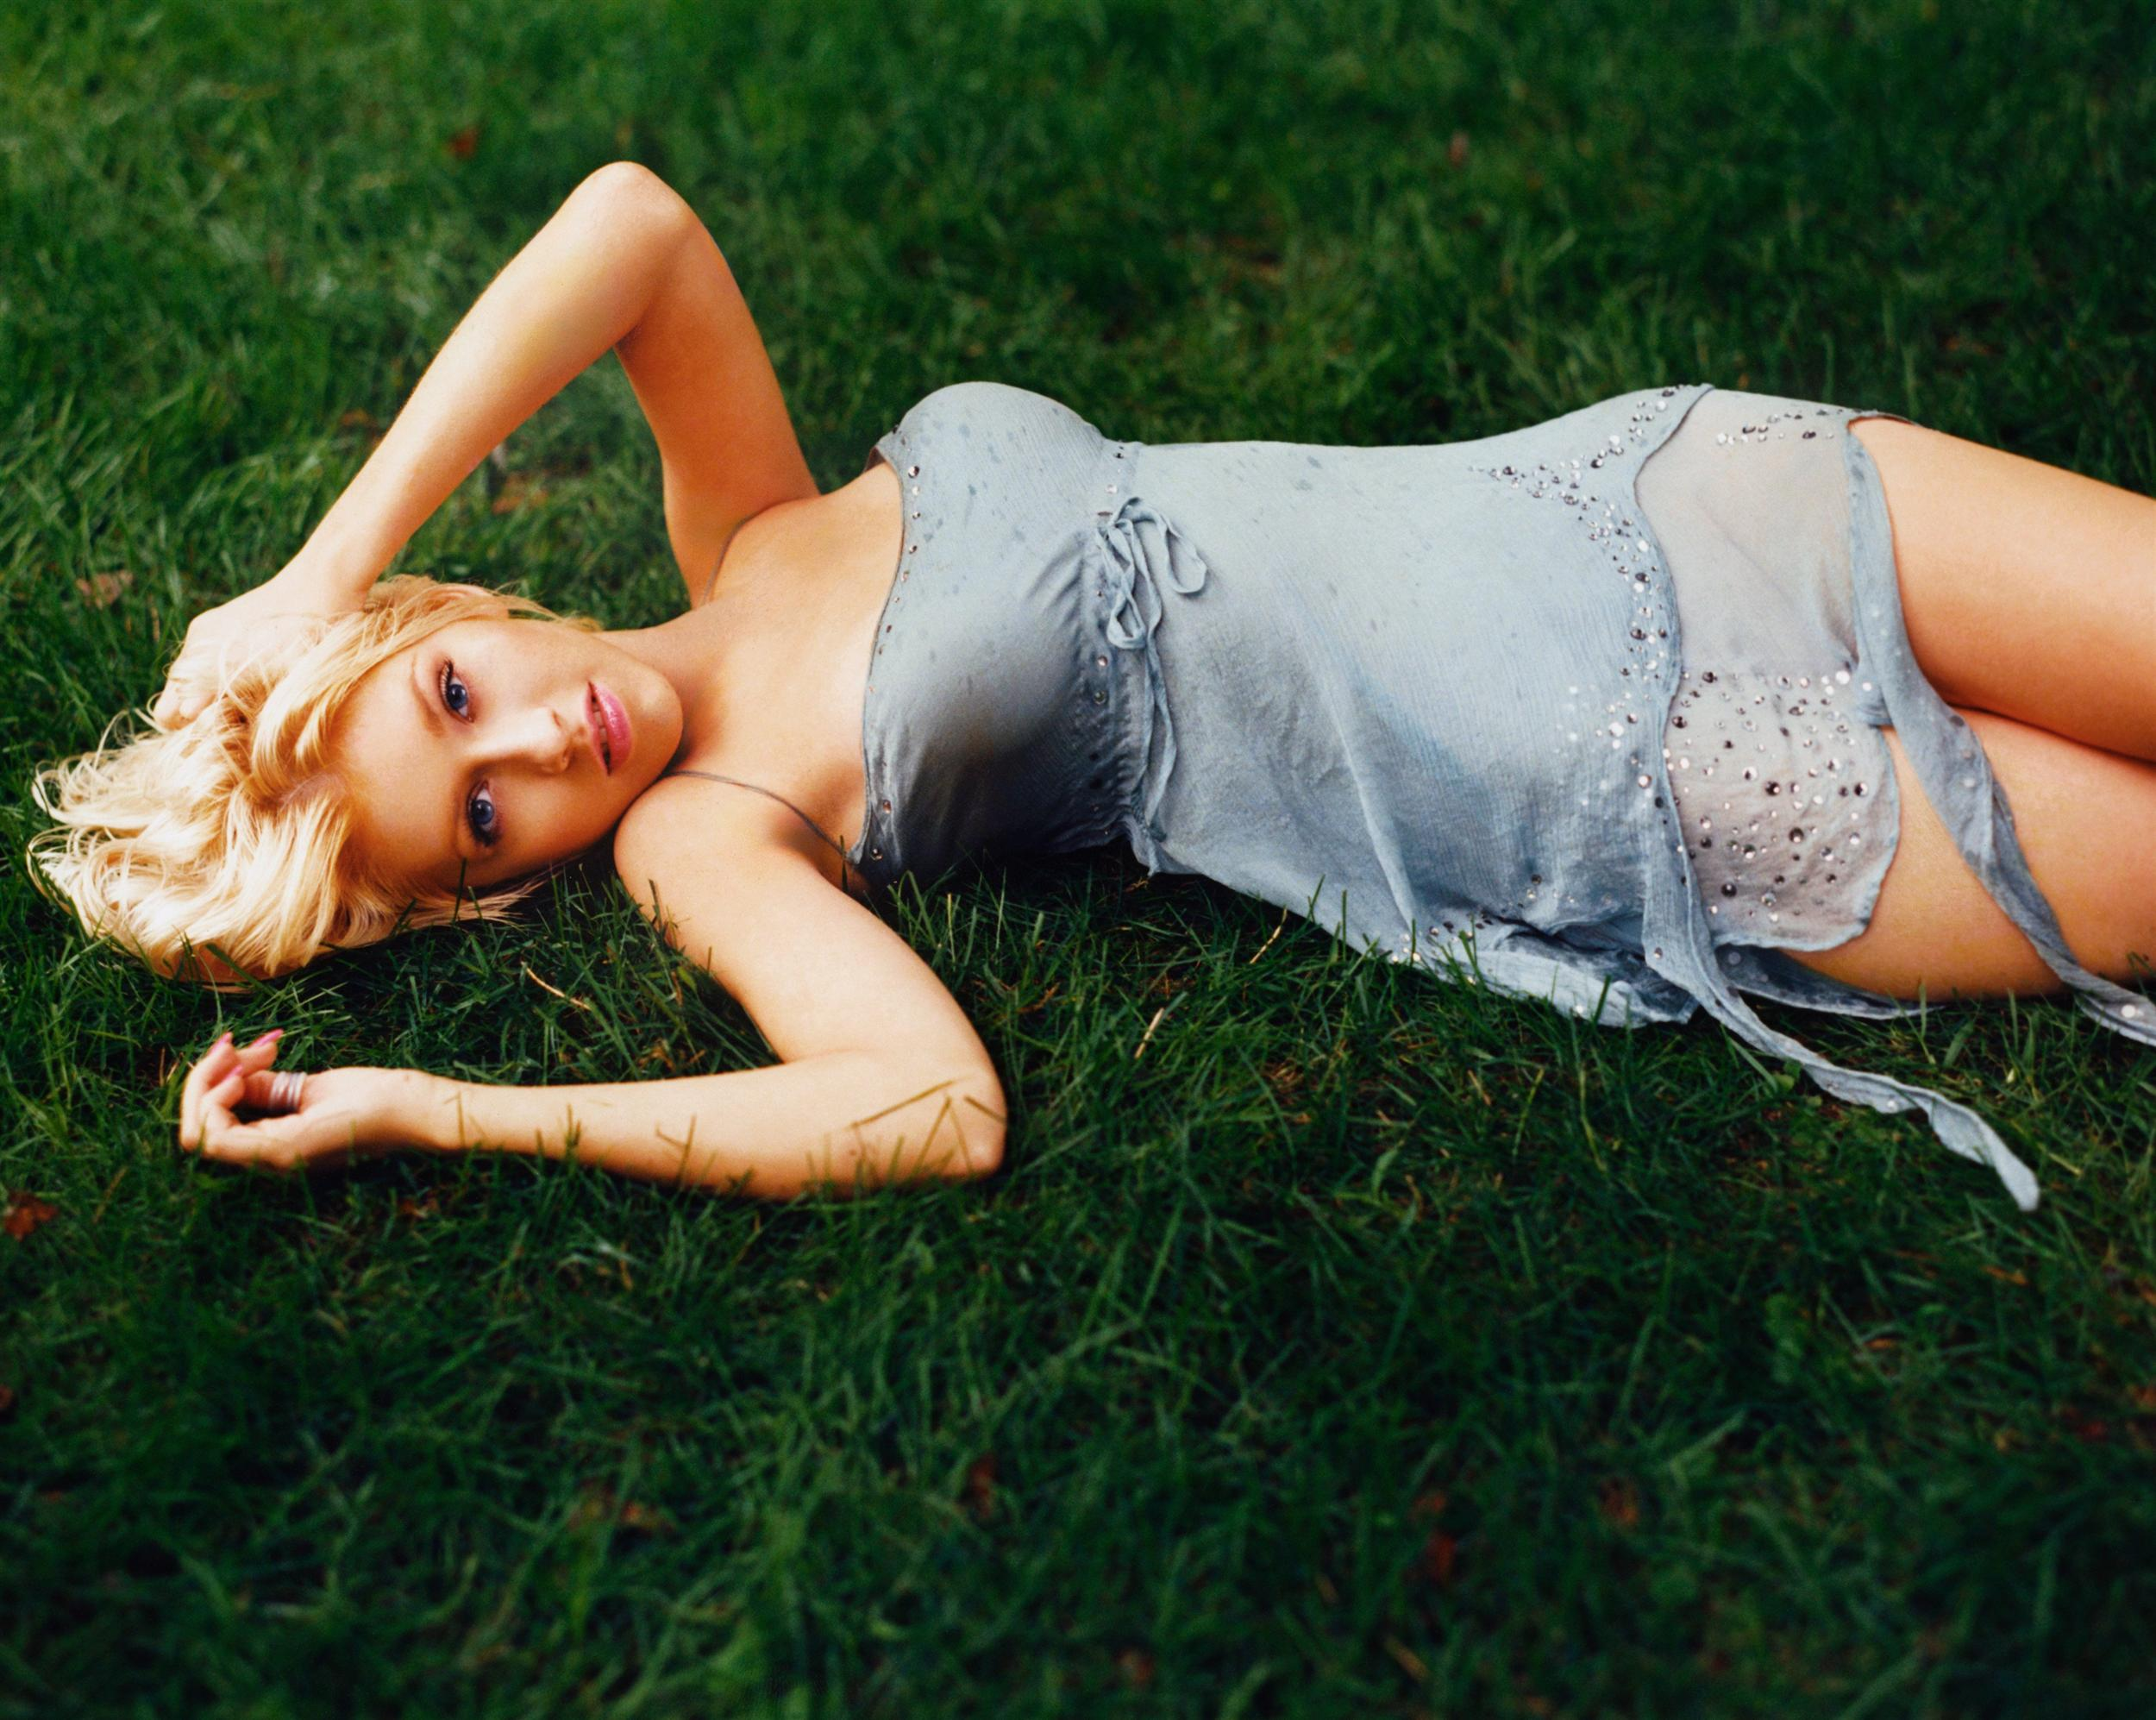 41031_Christina_Aguilera-018296_Mark_Seliger_Photoshoot_122_1145lo.jpg